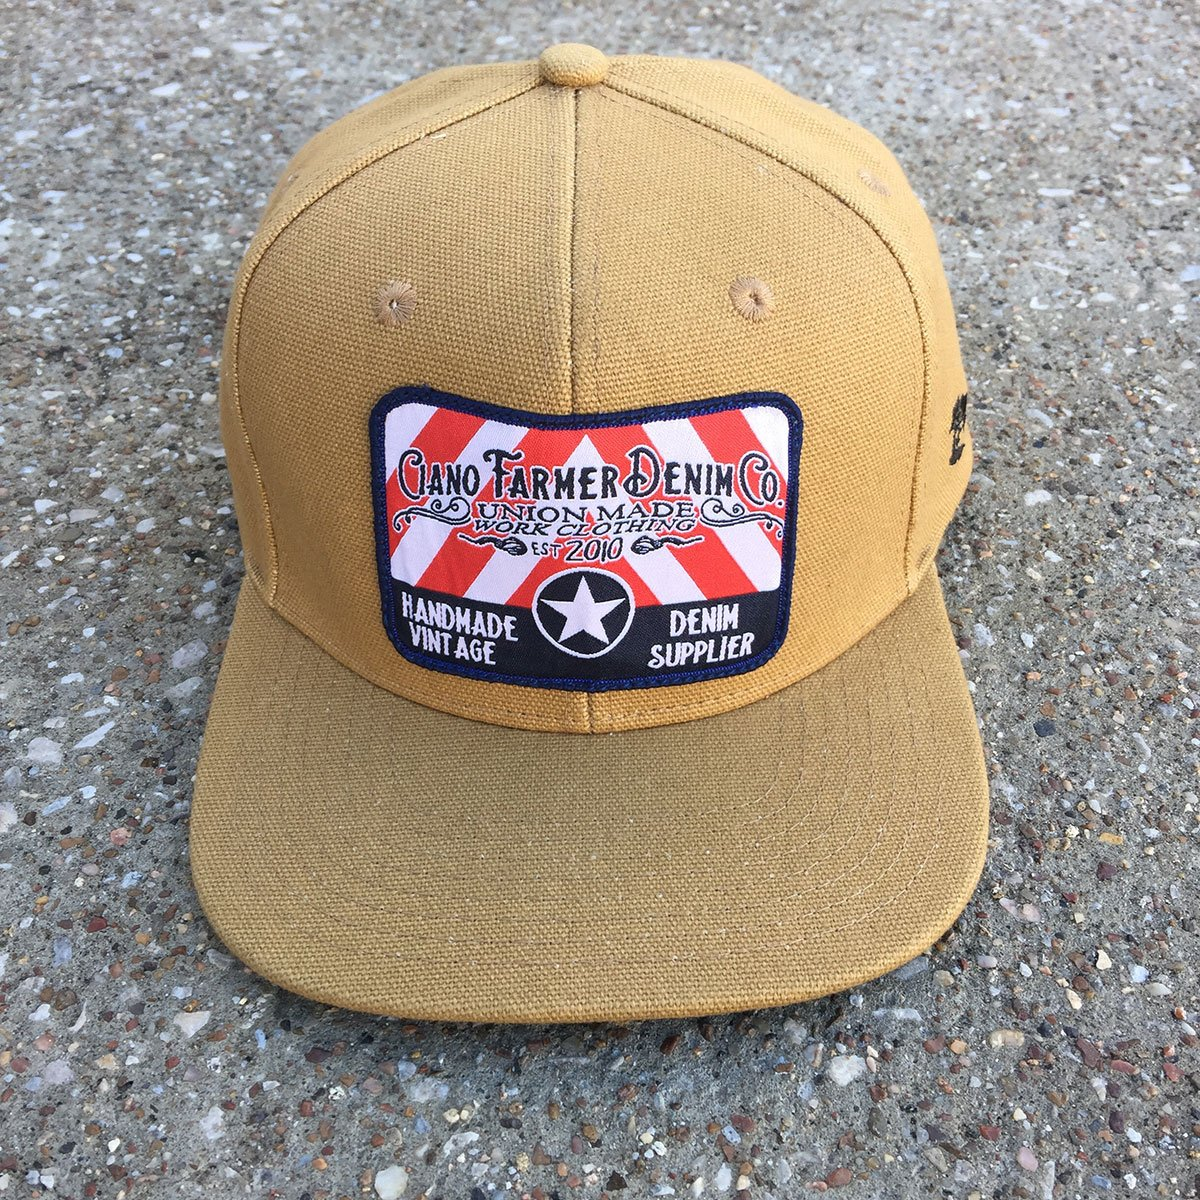 15oz Usa Duck Canvas Snapback Hat Embroidery Patch Hat Embroidery Hats Snapback Hats